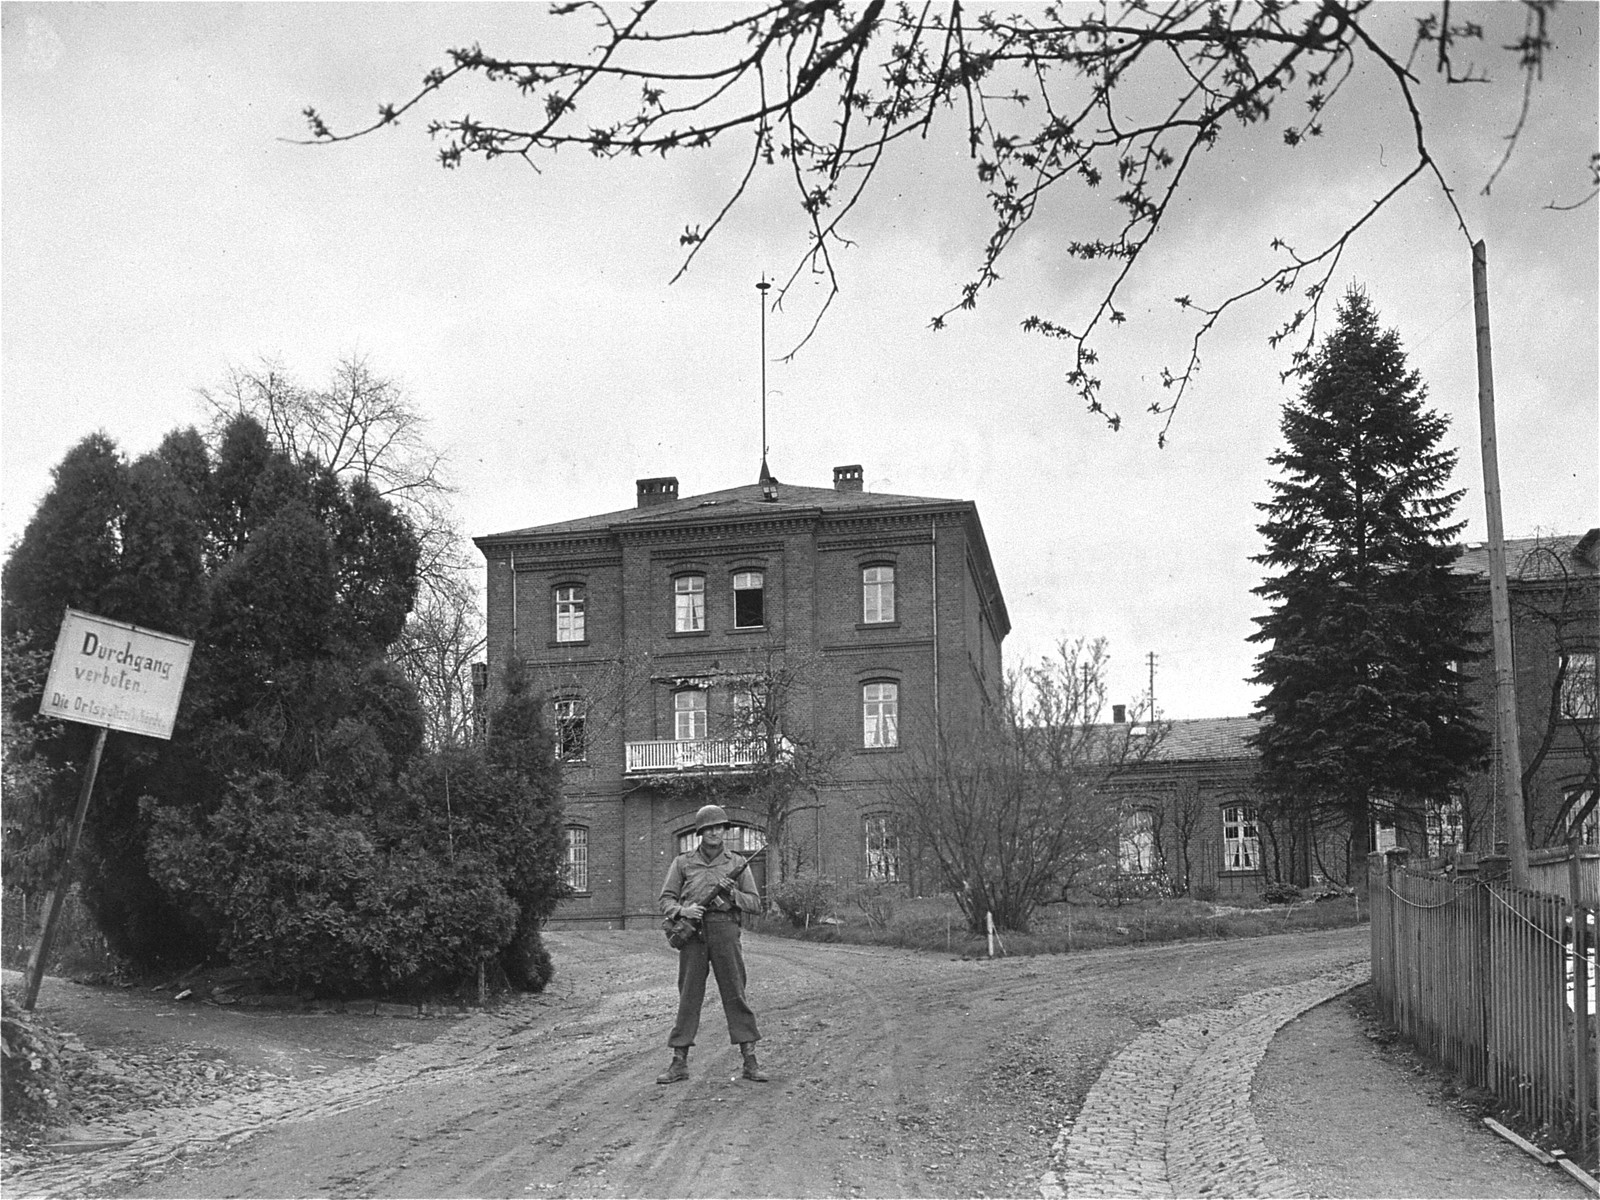 An American sentry stands guard in front of the Hadamar Institute.  The photograph was taken by an American military photographer soon after the liberation.